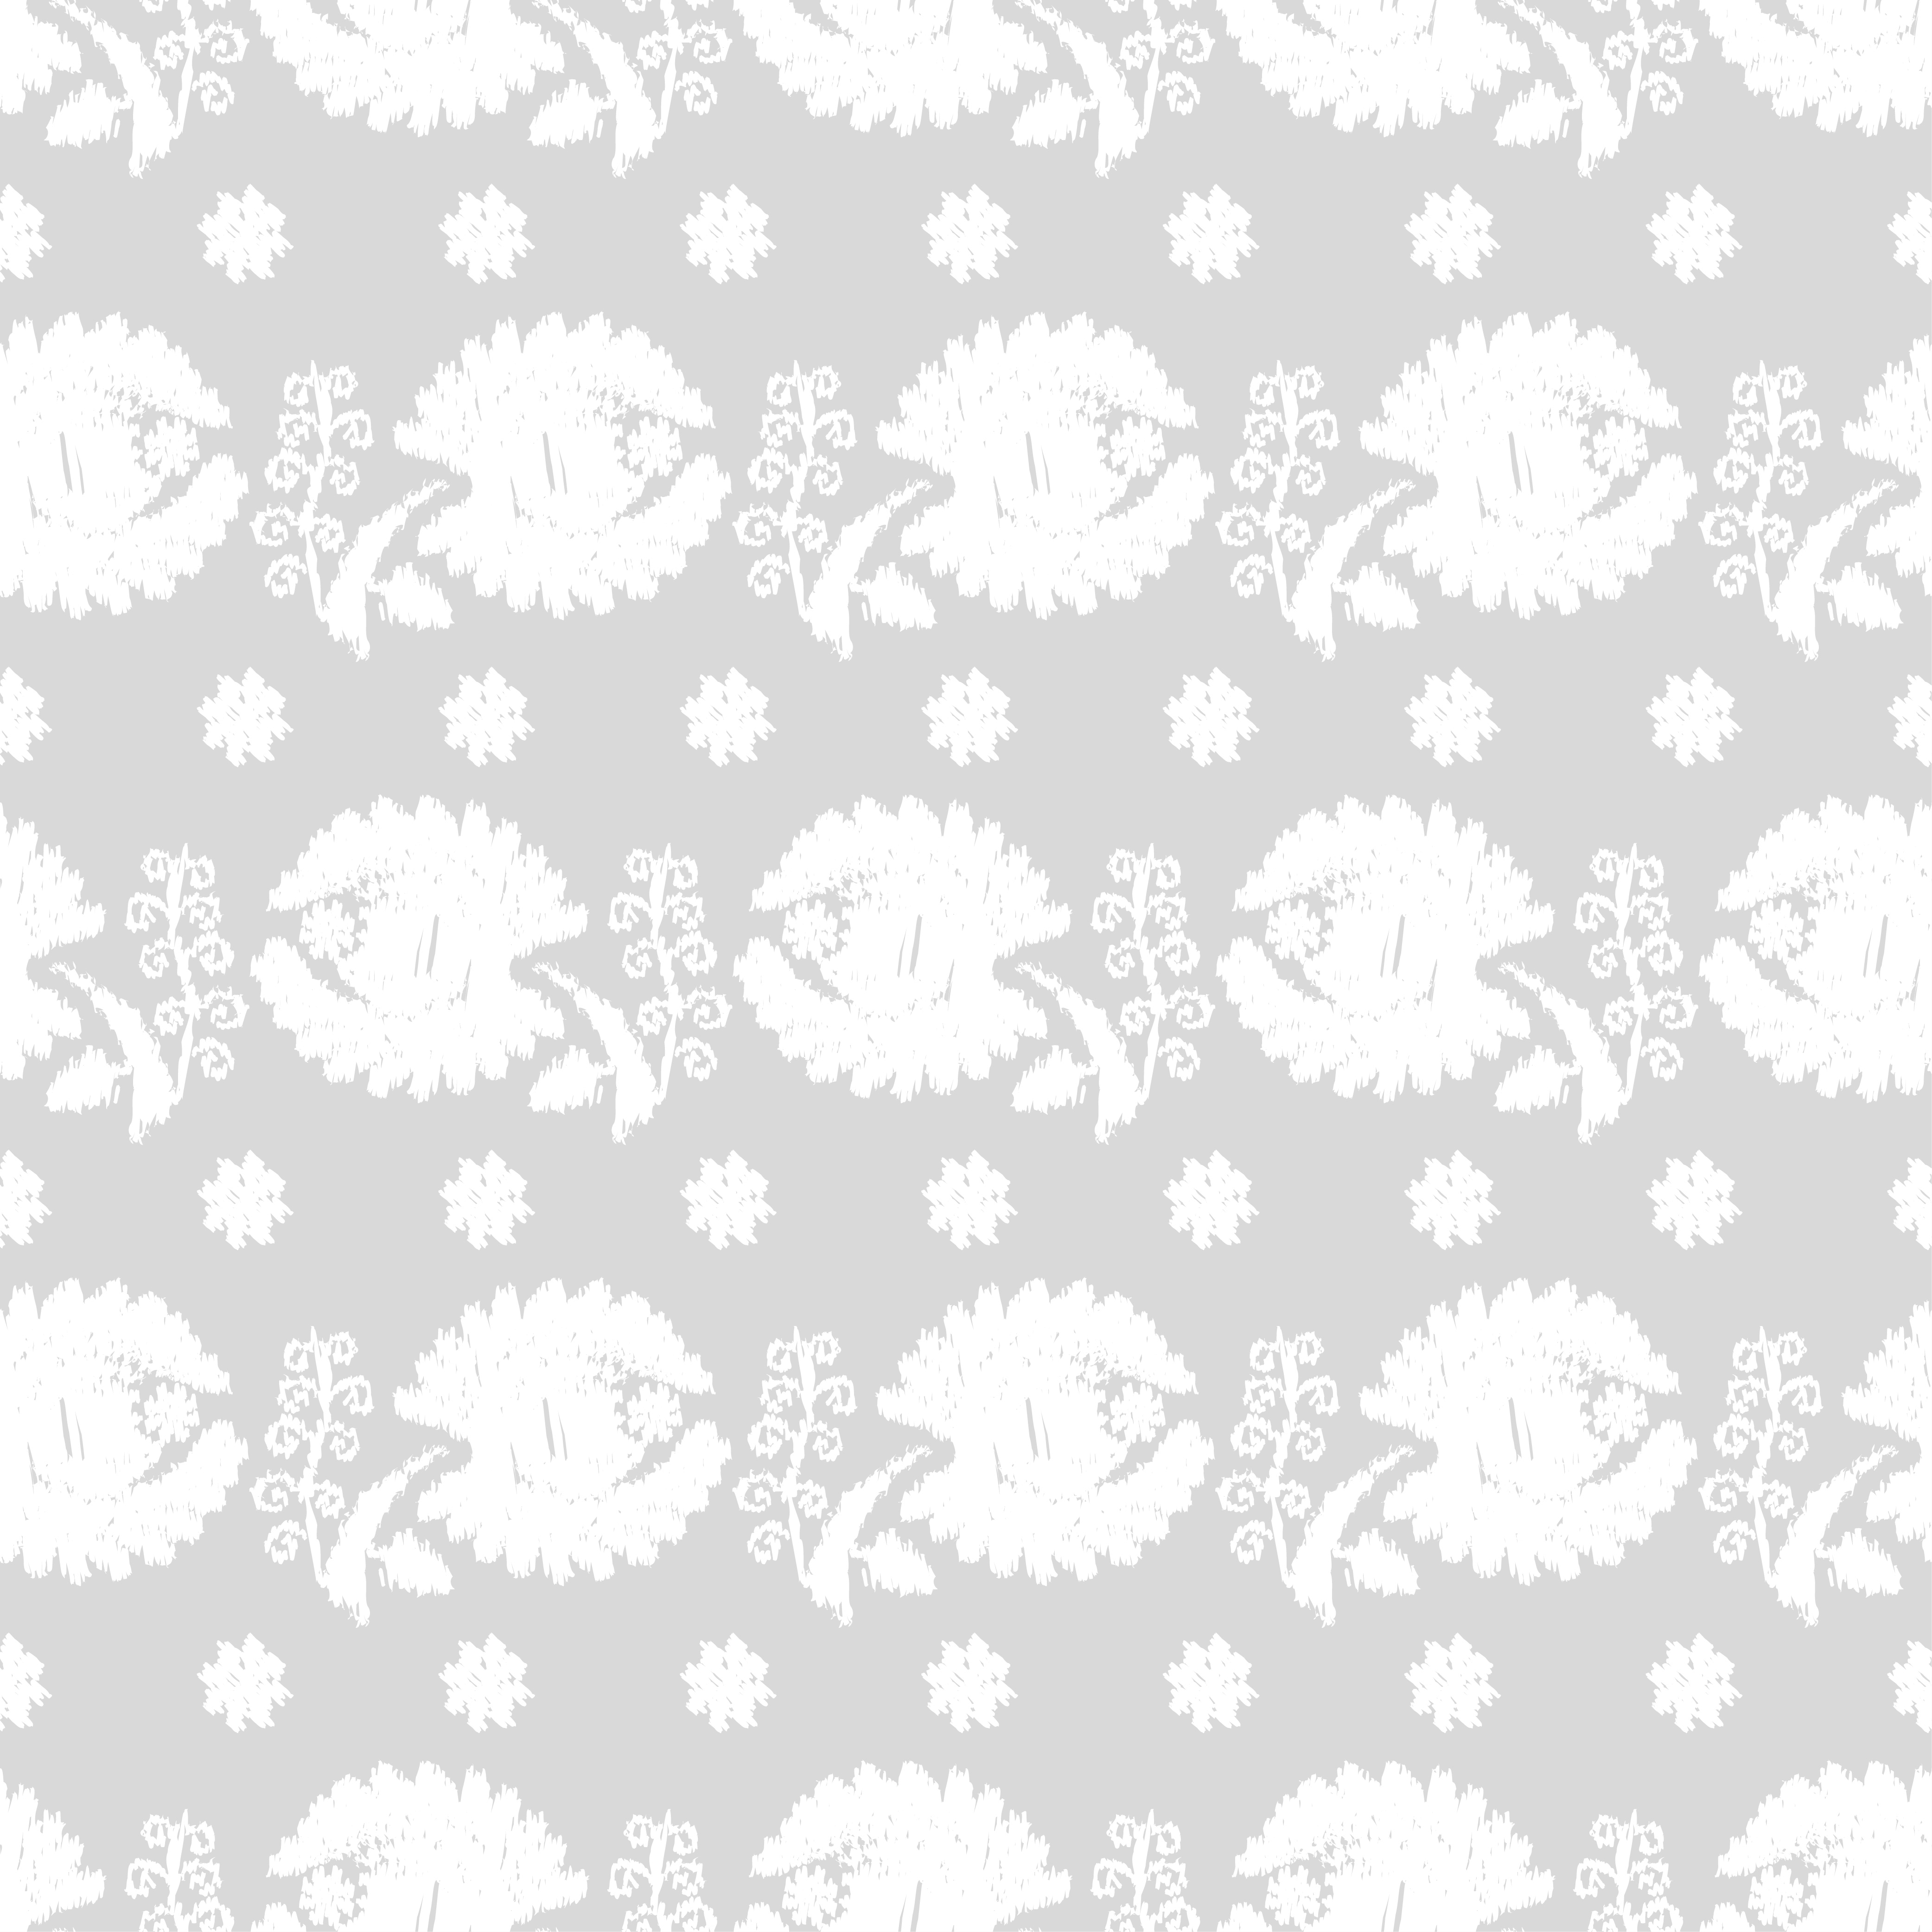 Set of 6 Seamless vector background. White flowers on a gray background. example image 7